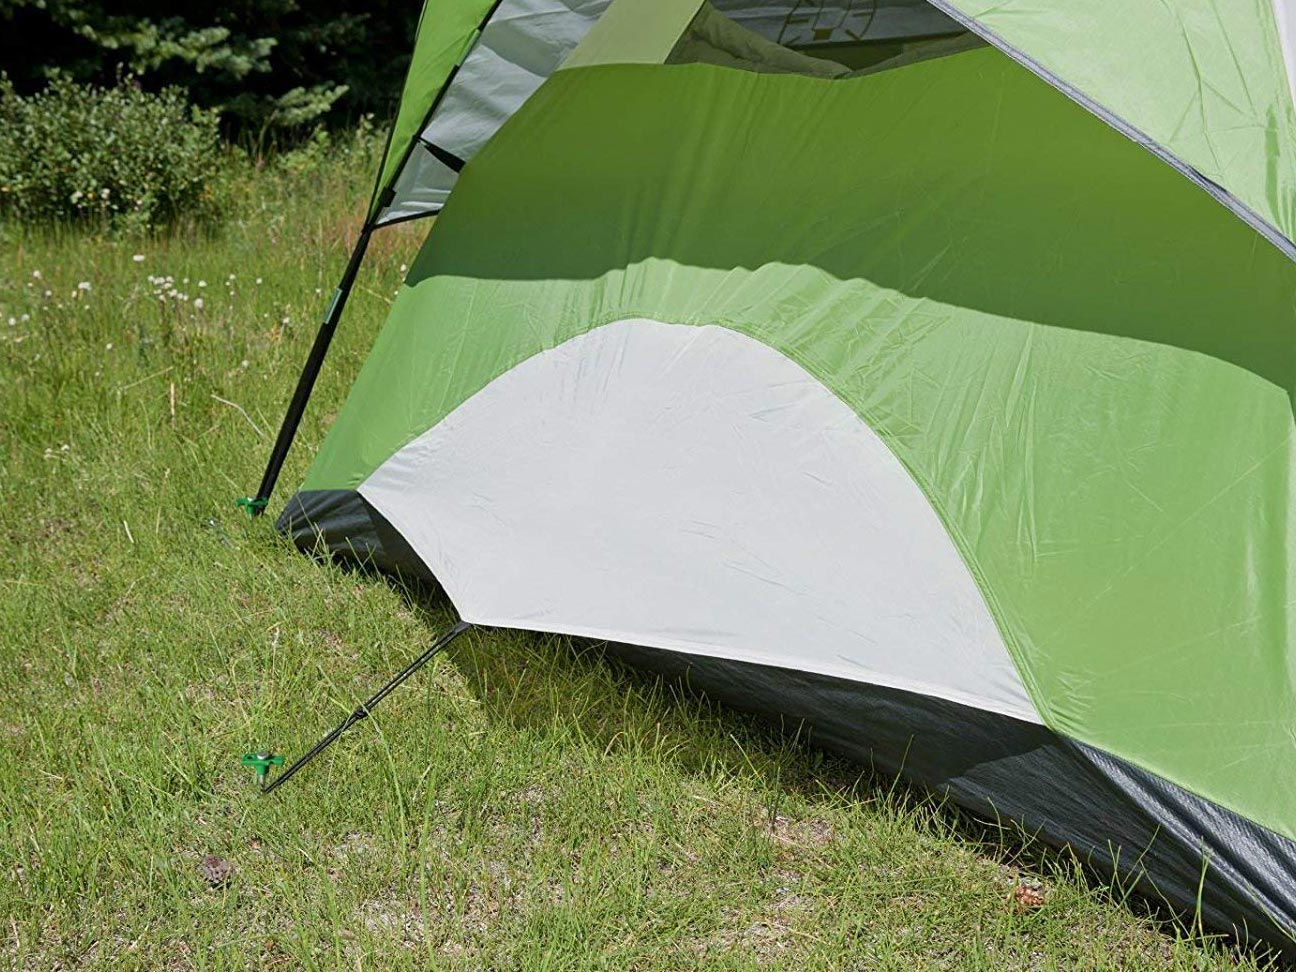 Green tent close up of stake